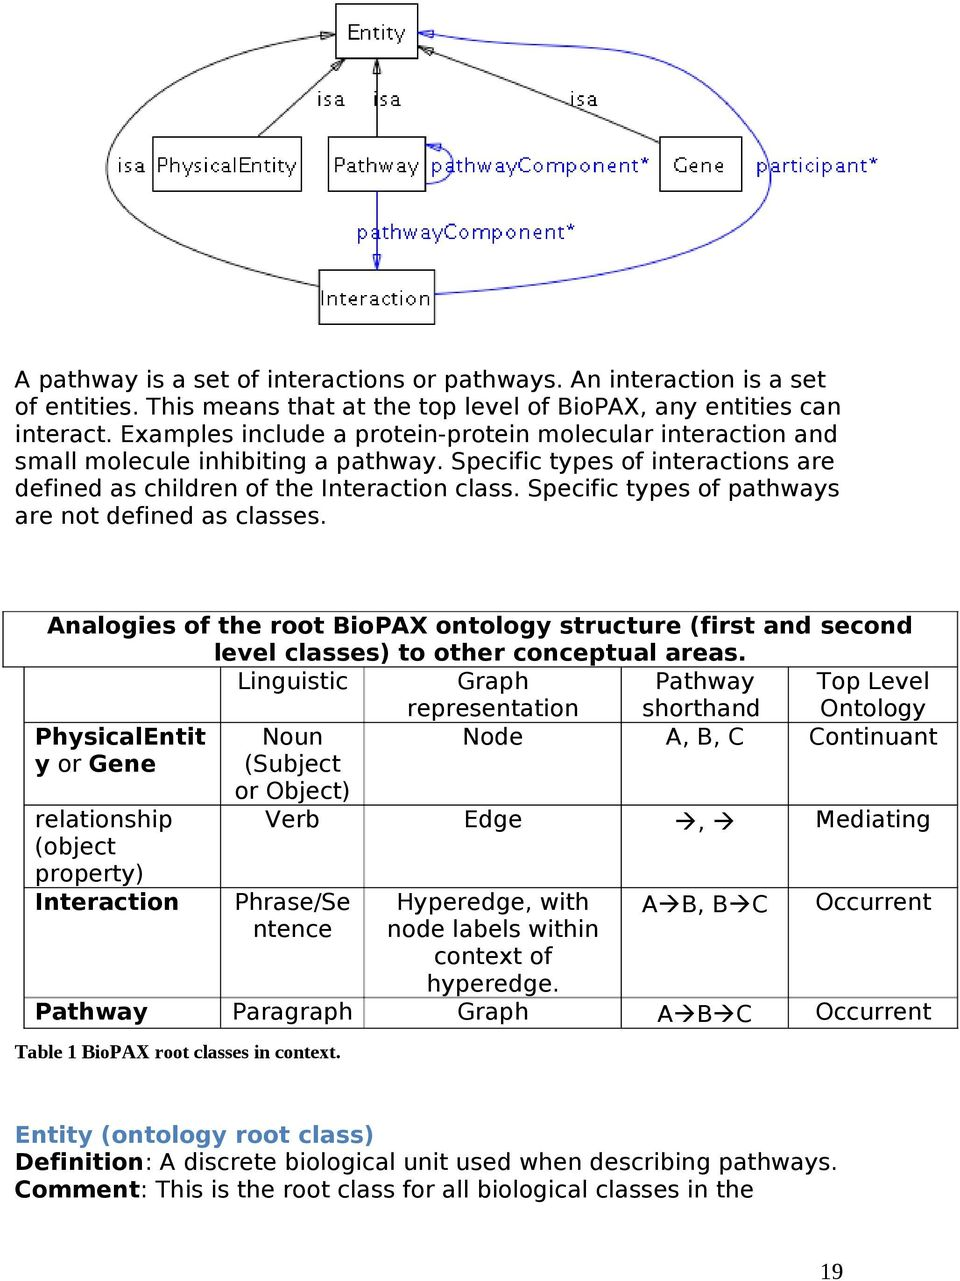 Specific types of pathways are not defined as classes. Analogies of the root BioPAX ontology structure (first and second level classes) to other conceptual areas.